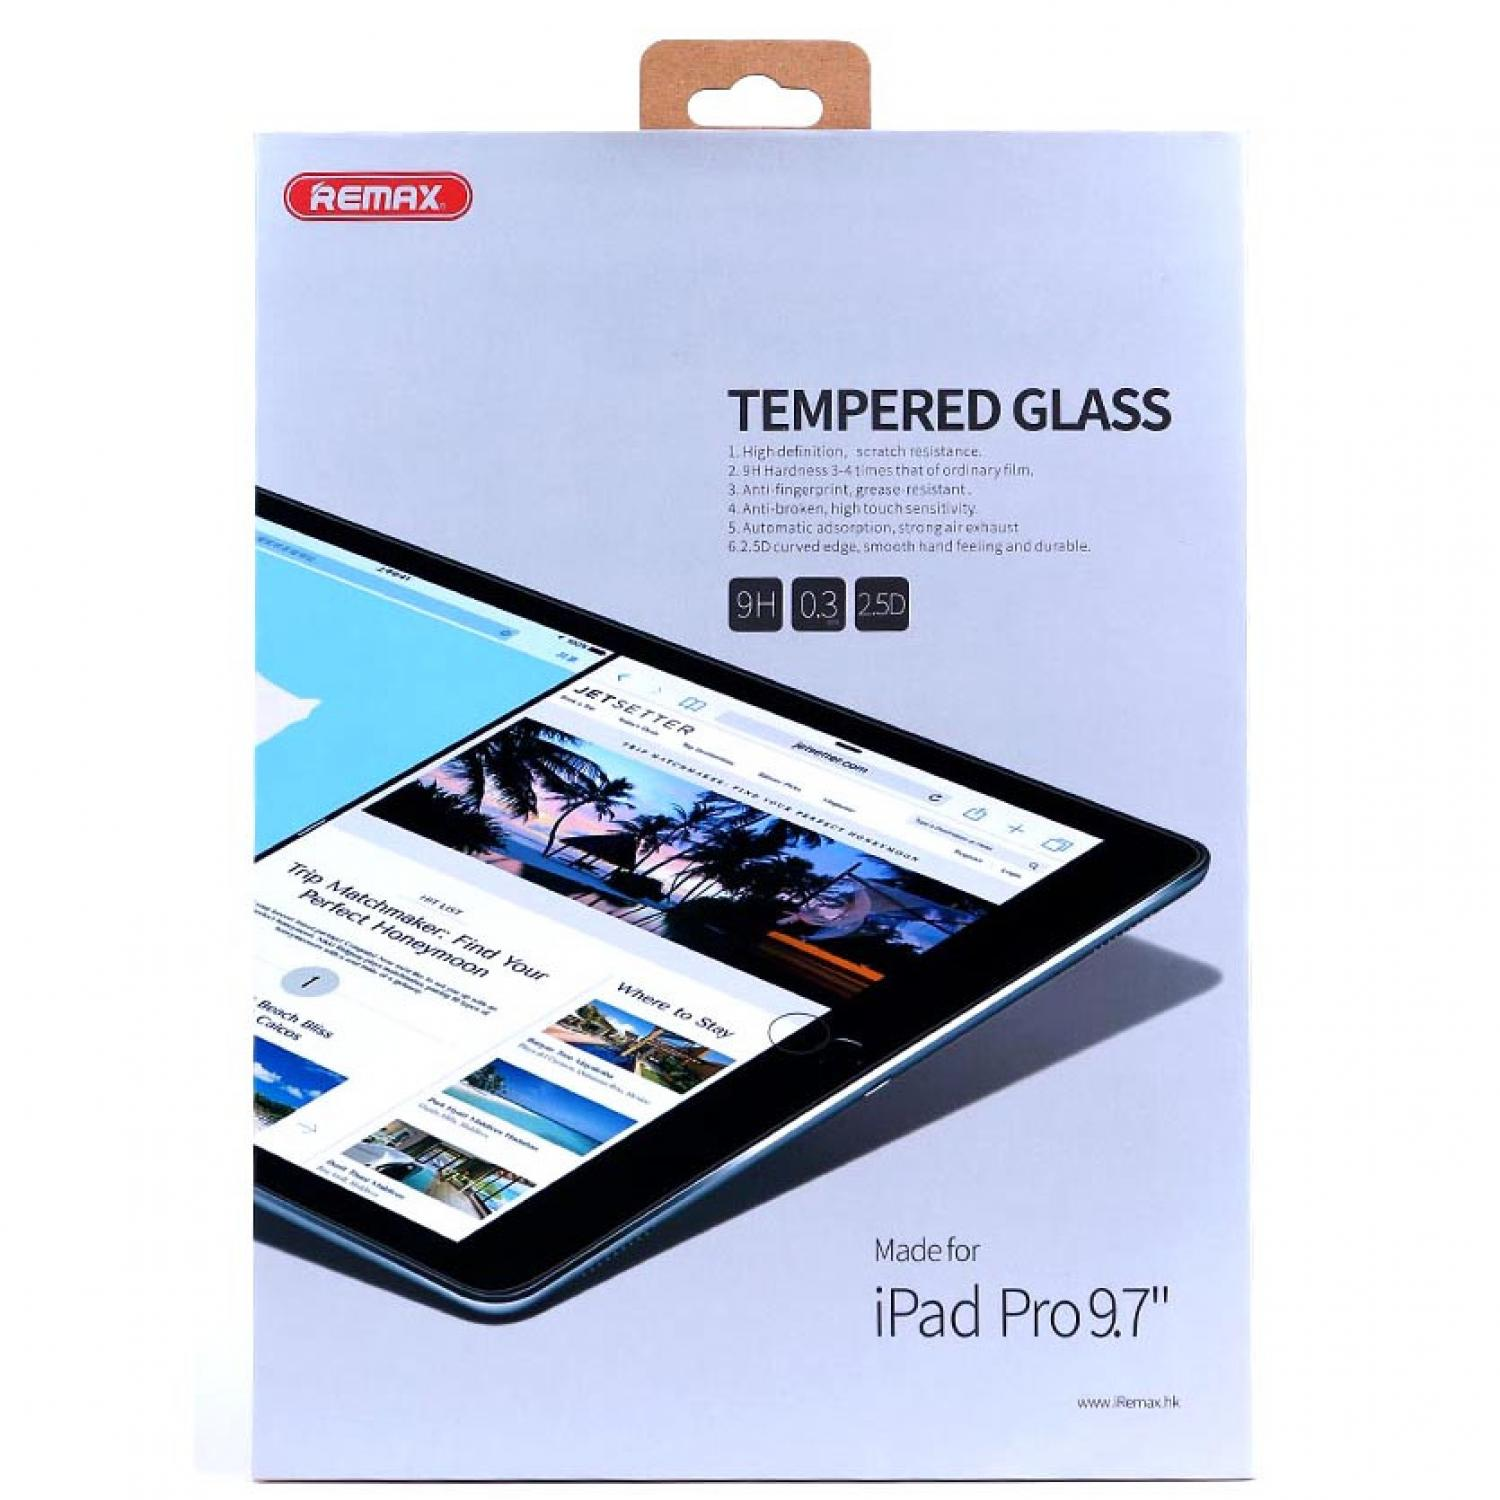 REMAX Tempered Glass 0.3mm for iPad Pro 9.7 Inch